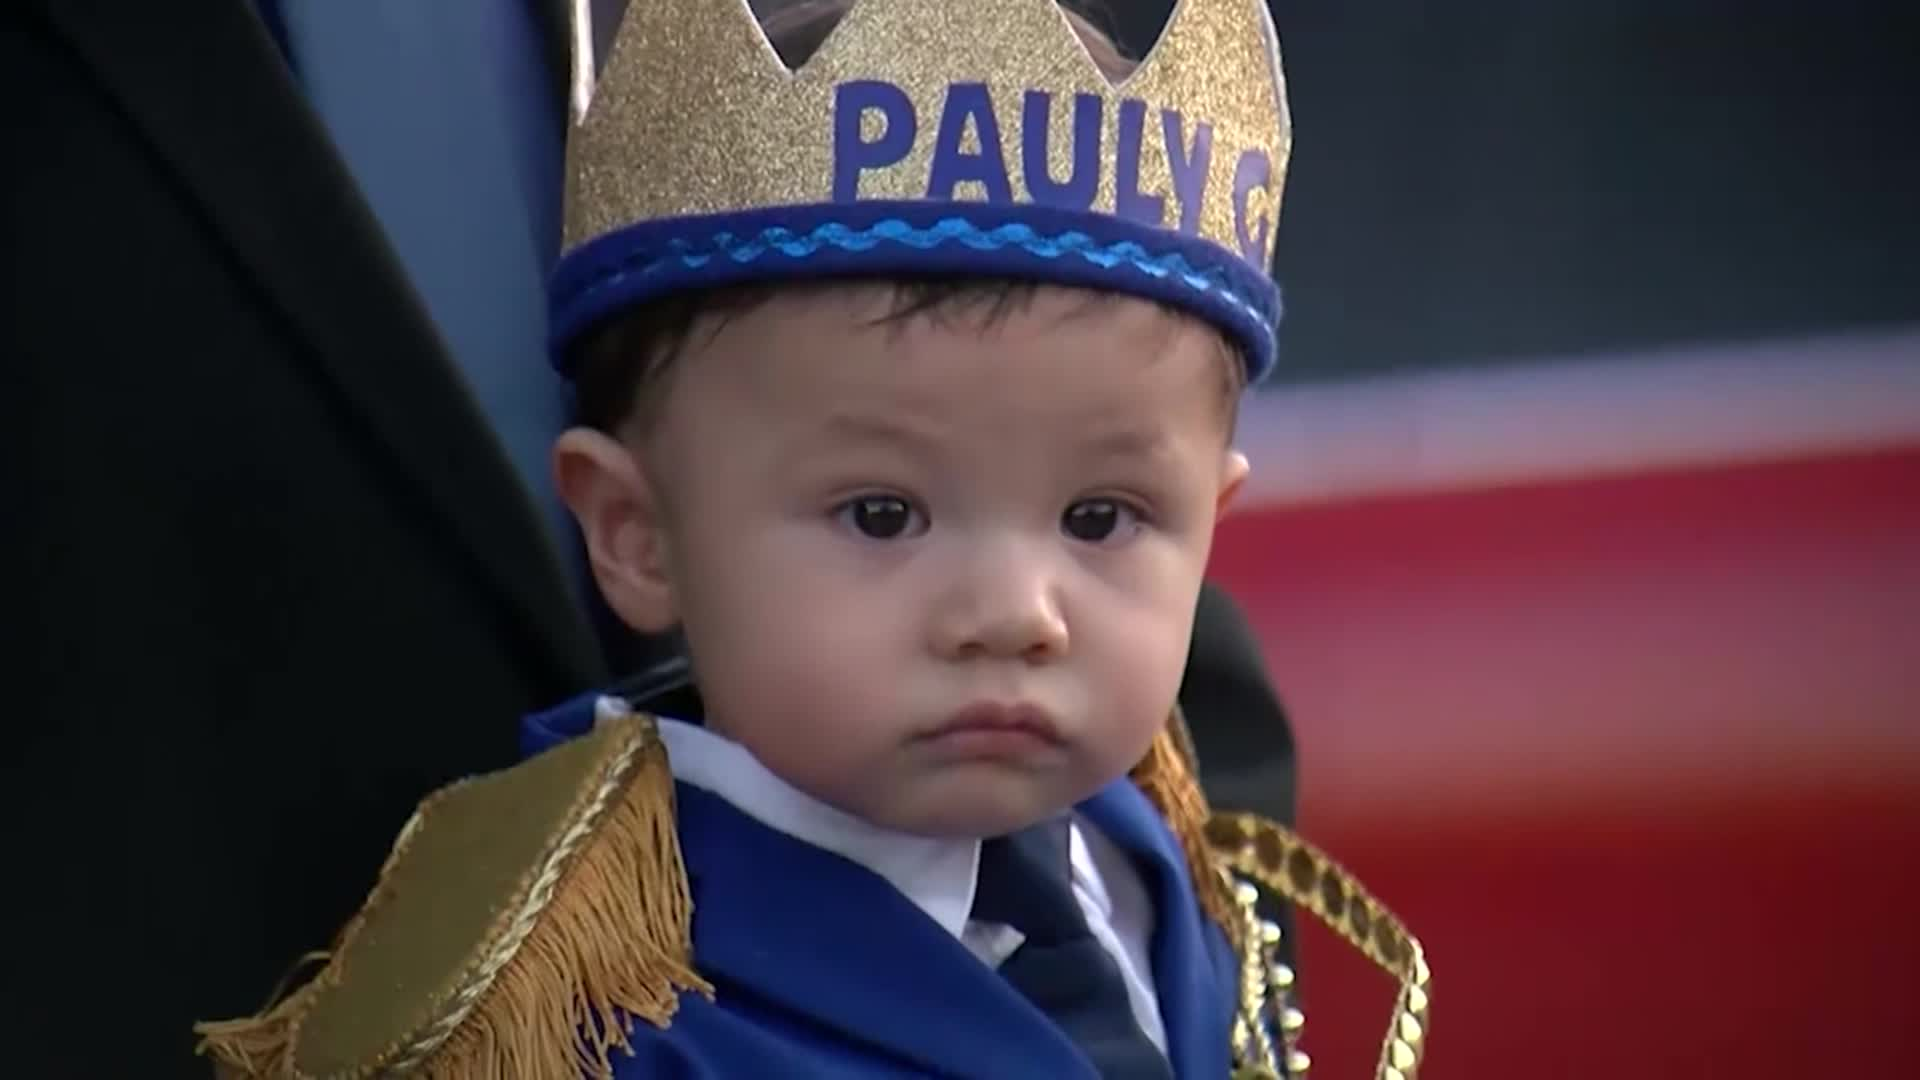 Hundreds took part in a parade celebrating the first birthday of a boy who lost both his parents in the El Paso shooting